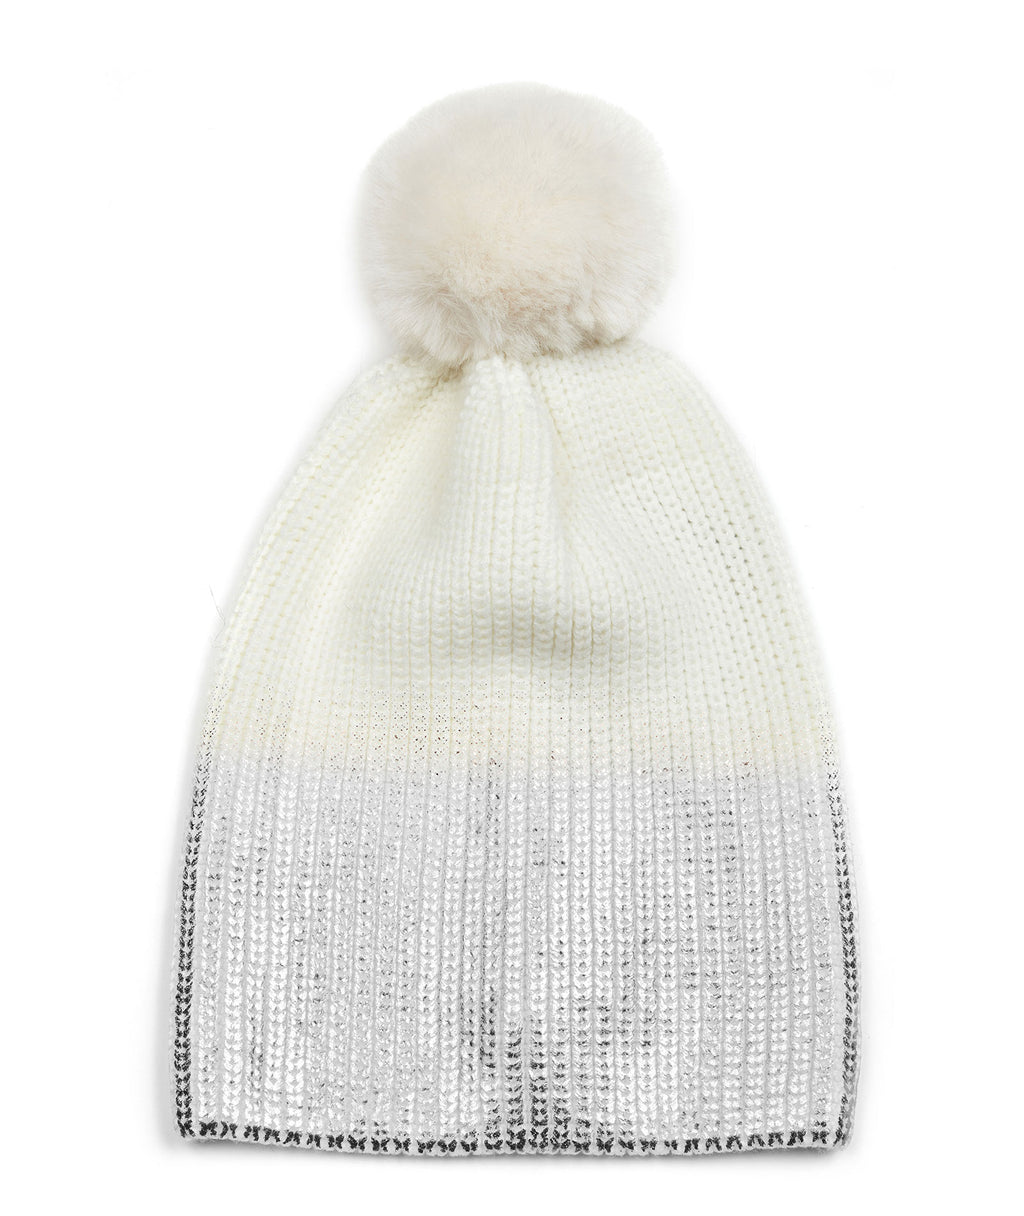 Jocelyn Women Knit Hat With Ombre Metallic/Faux Fur Pom